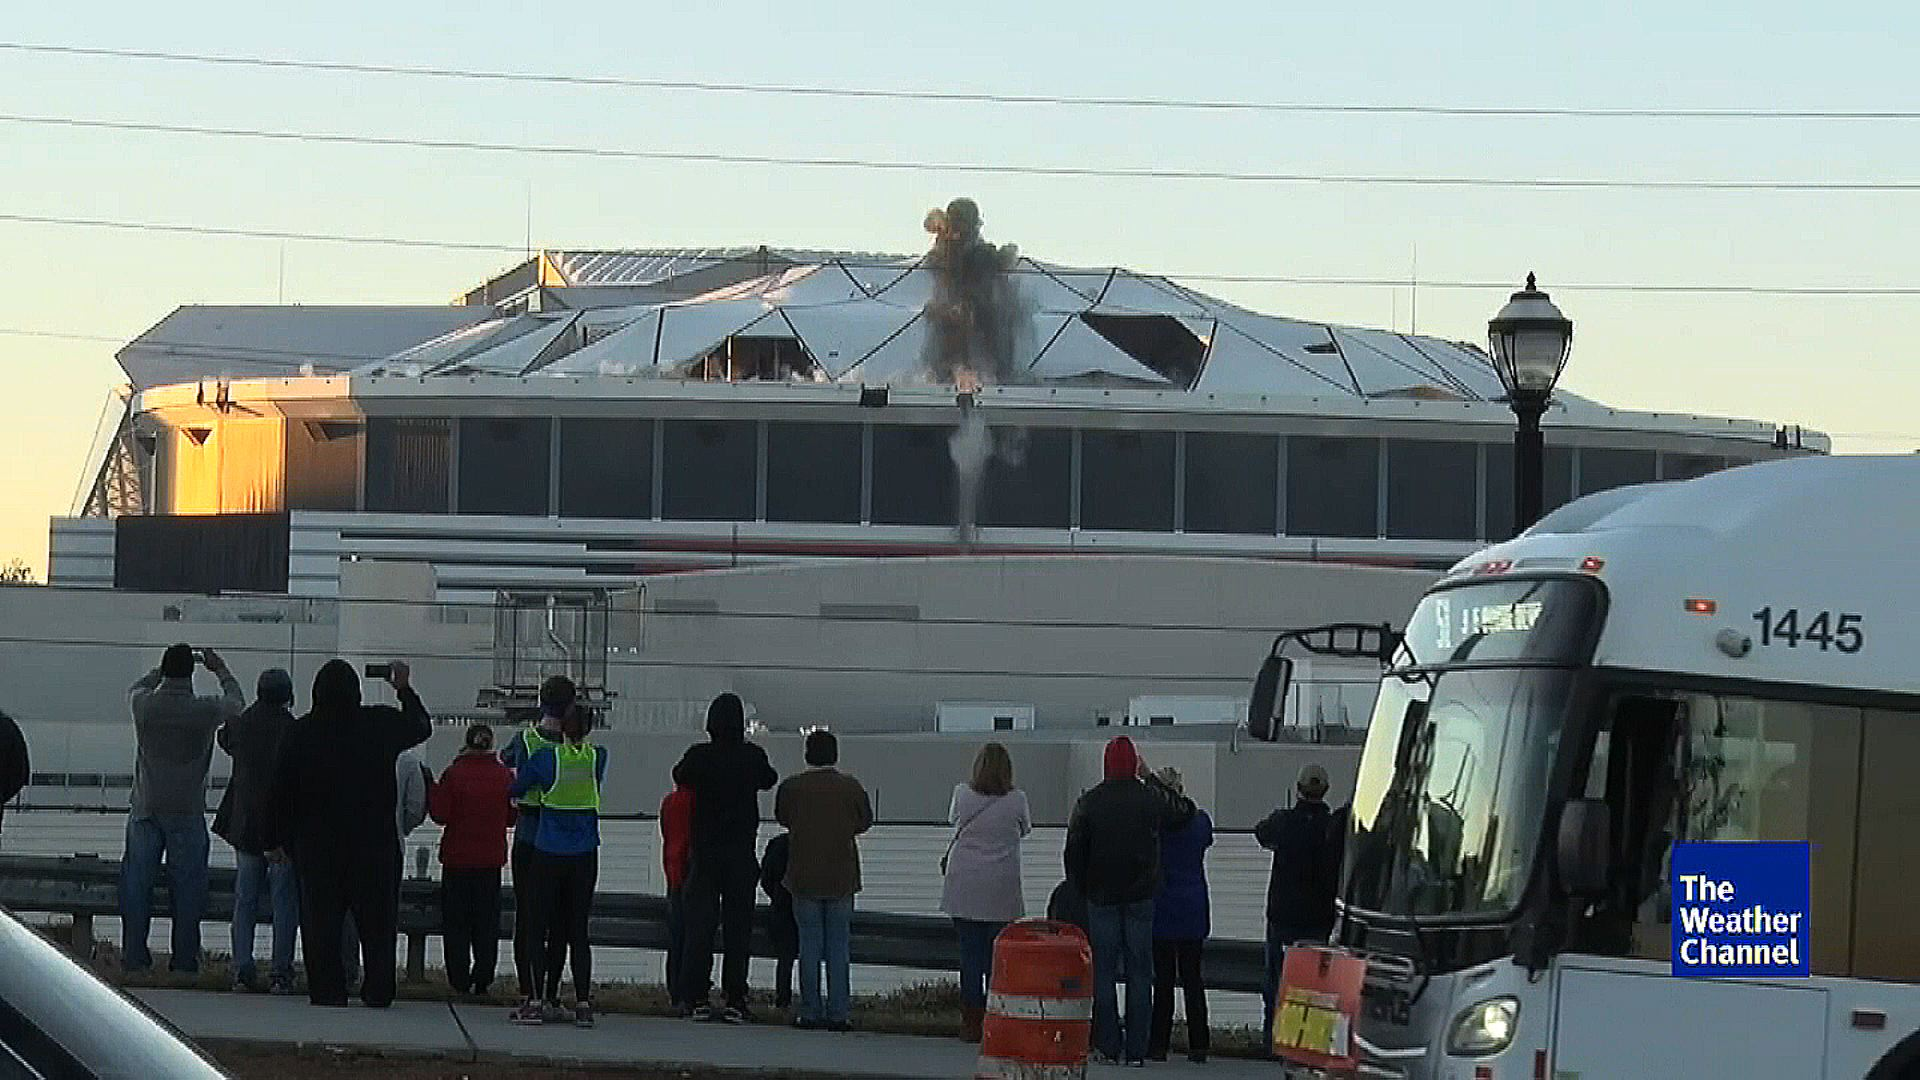 Georgia Dome Implosion Bus >> Bus Perfect Photobomb Blocks Implosion View Cnn Video